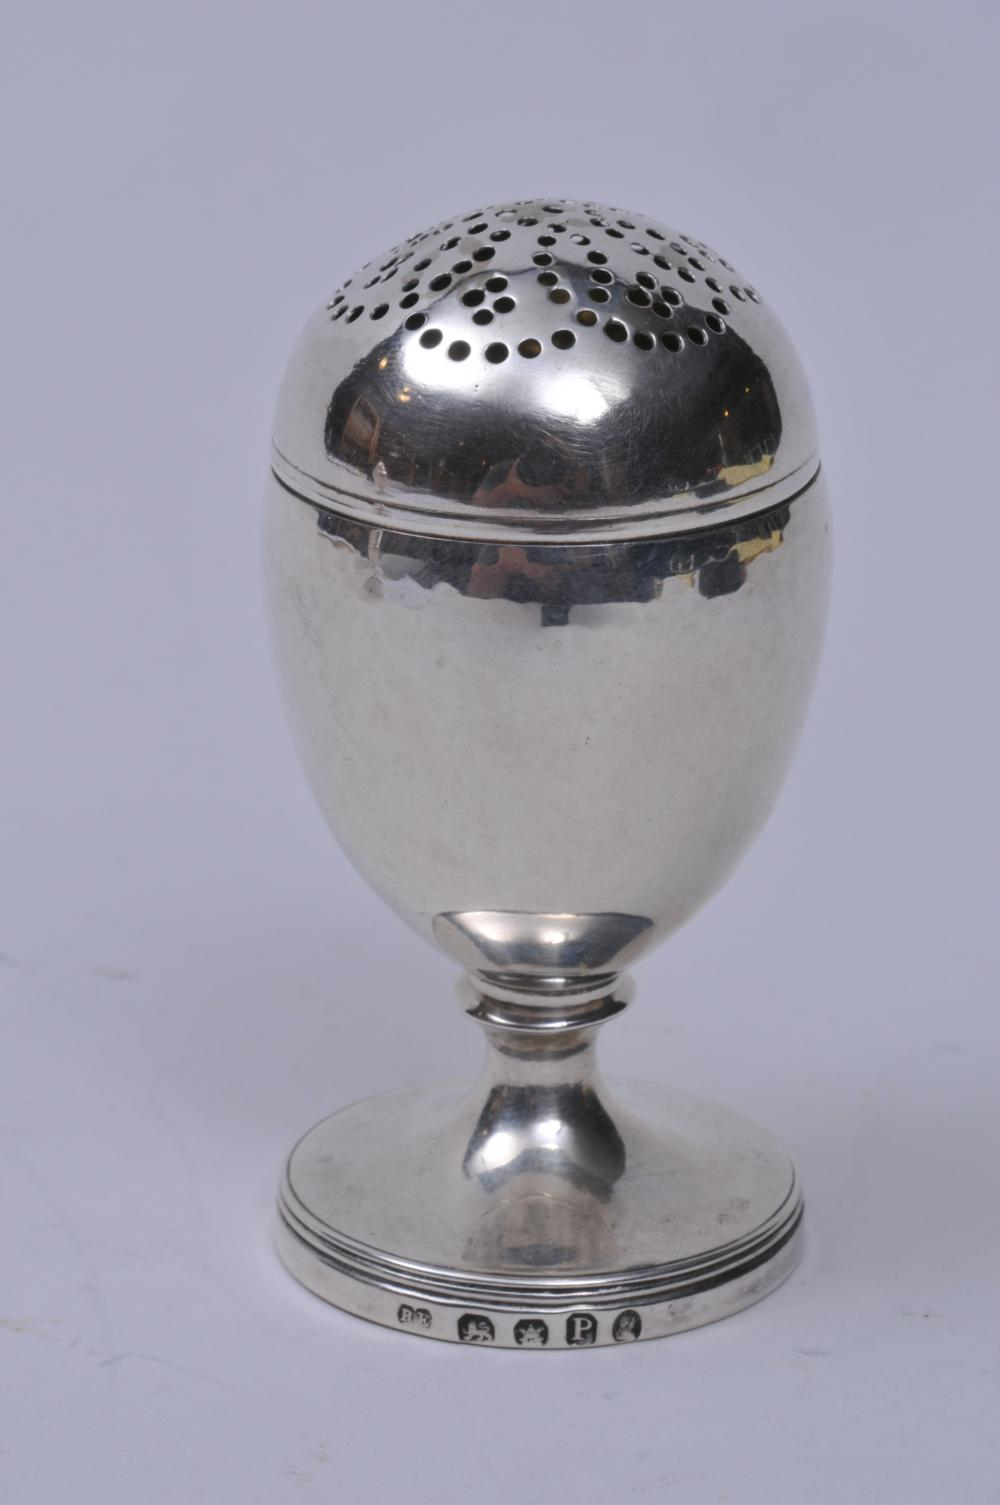 "Lot 239: 19th century English Georgian sterling silver salt shaker. Round body with line decoration. Round base. Marked on base rim. Slight dent around holes. London 1810-11 R.E. mark. 3-1/4"" high. 1.8 ozt."